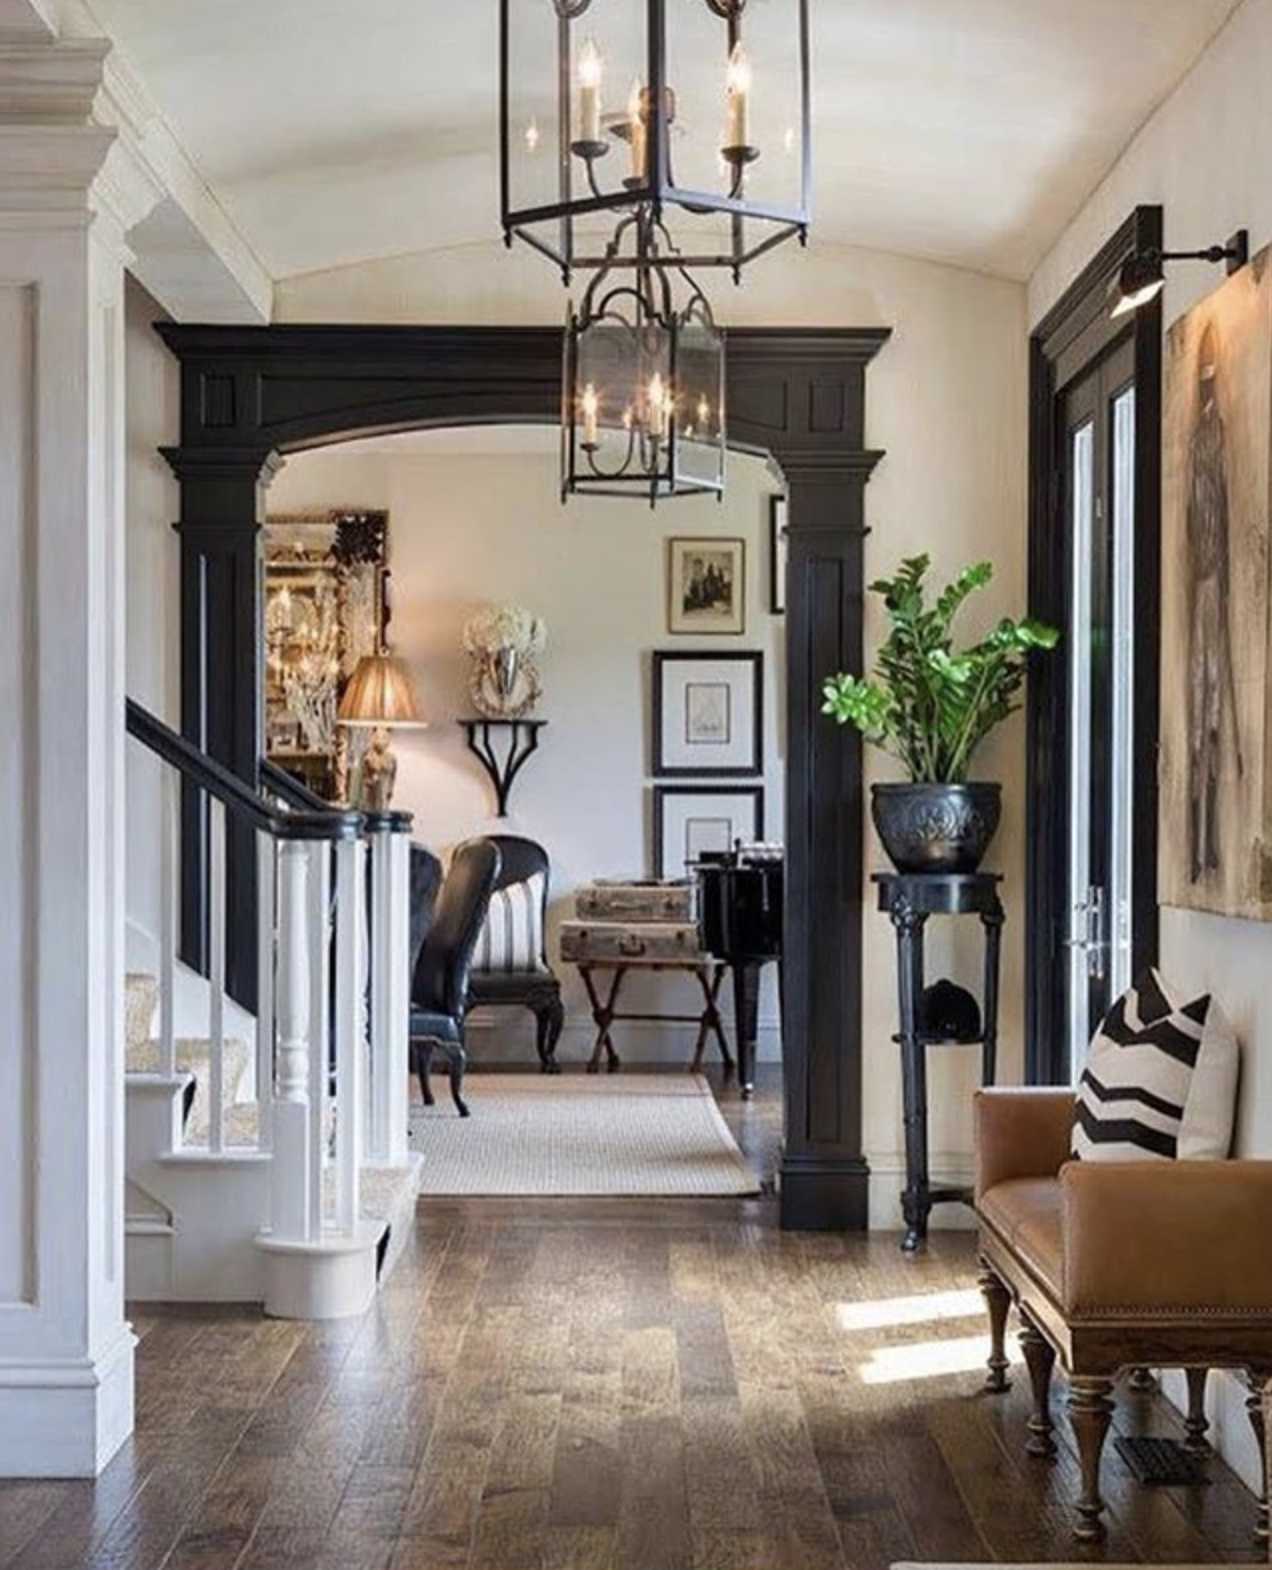 The lighting in this foyer and black doorway molding set the stage for the rest of the home. Designer and source unknown, please contact us if this is your design work or photo for proper credit.